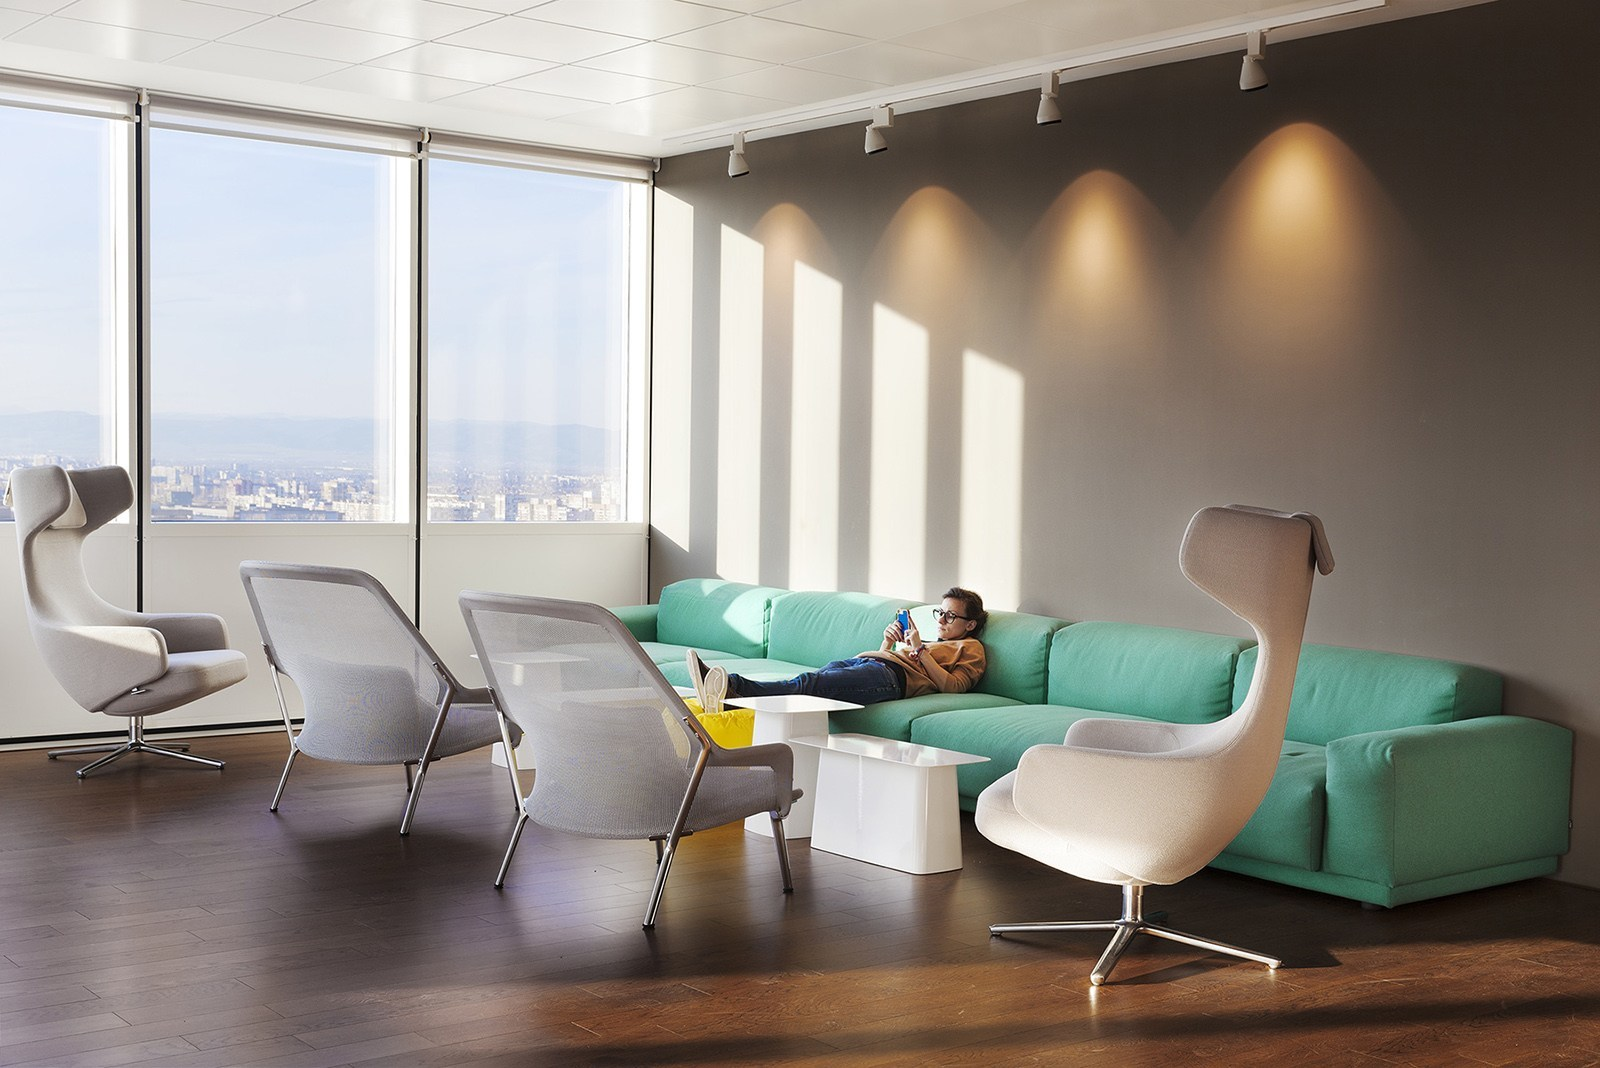 Paysafe-office-developers-cache atelier-Sofia-Bulgaria-24-relax area